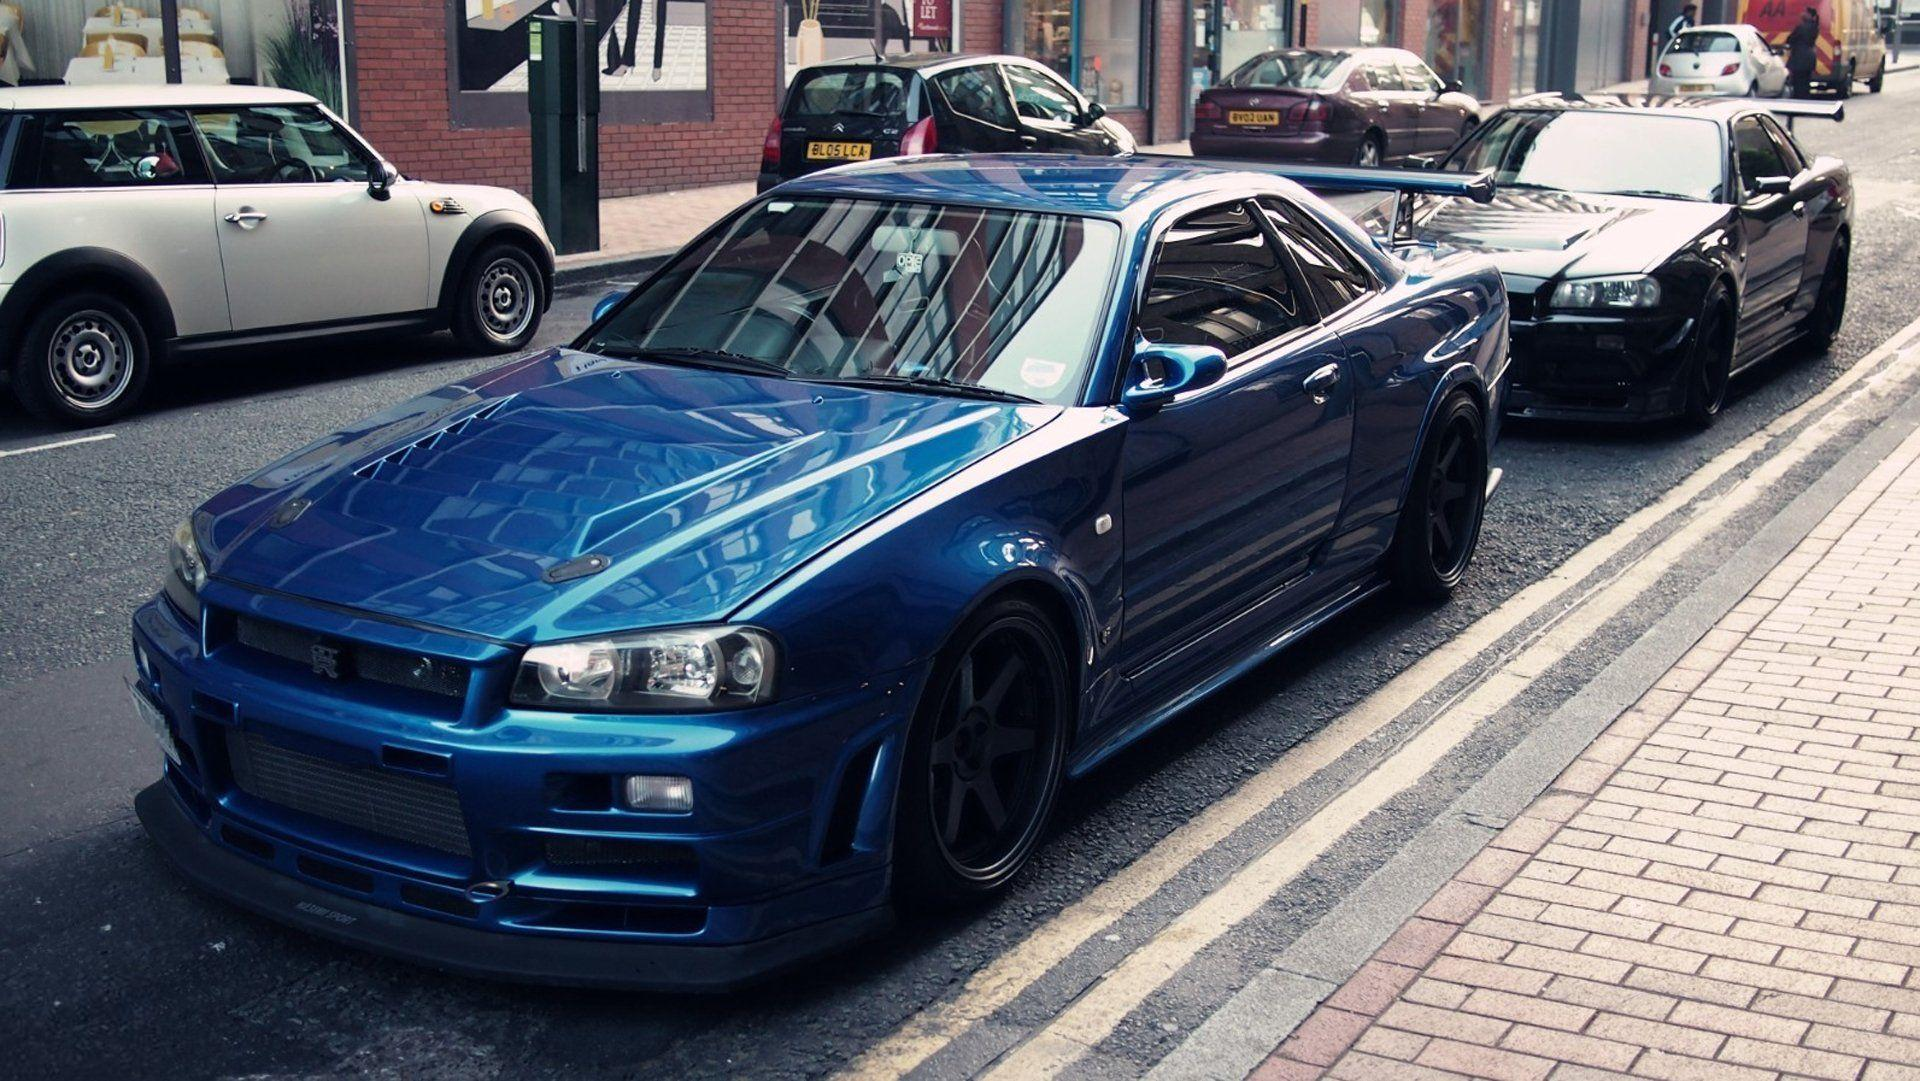 65 Nissan Skyline HD Wallpapers | Backgrounds - Wallpaper Abyss